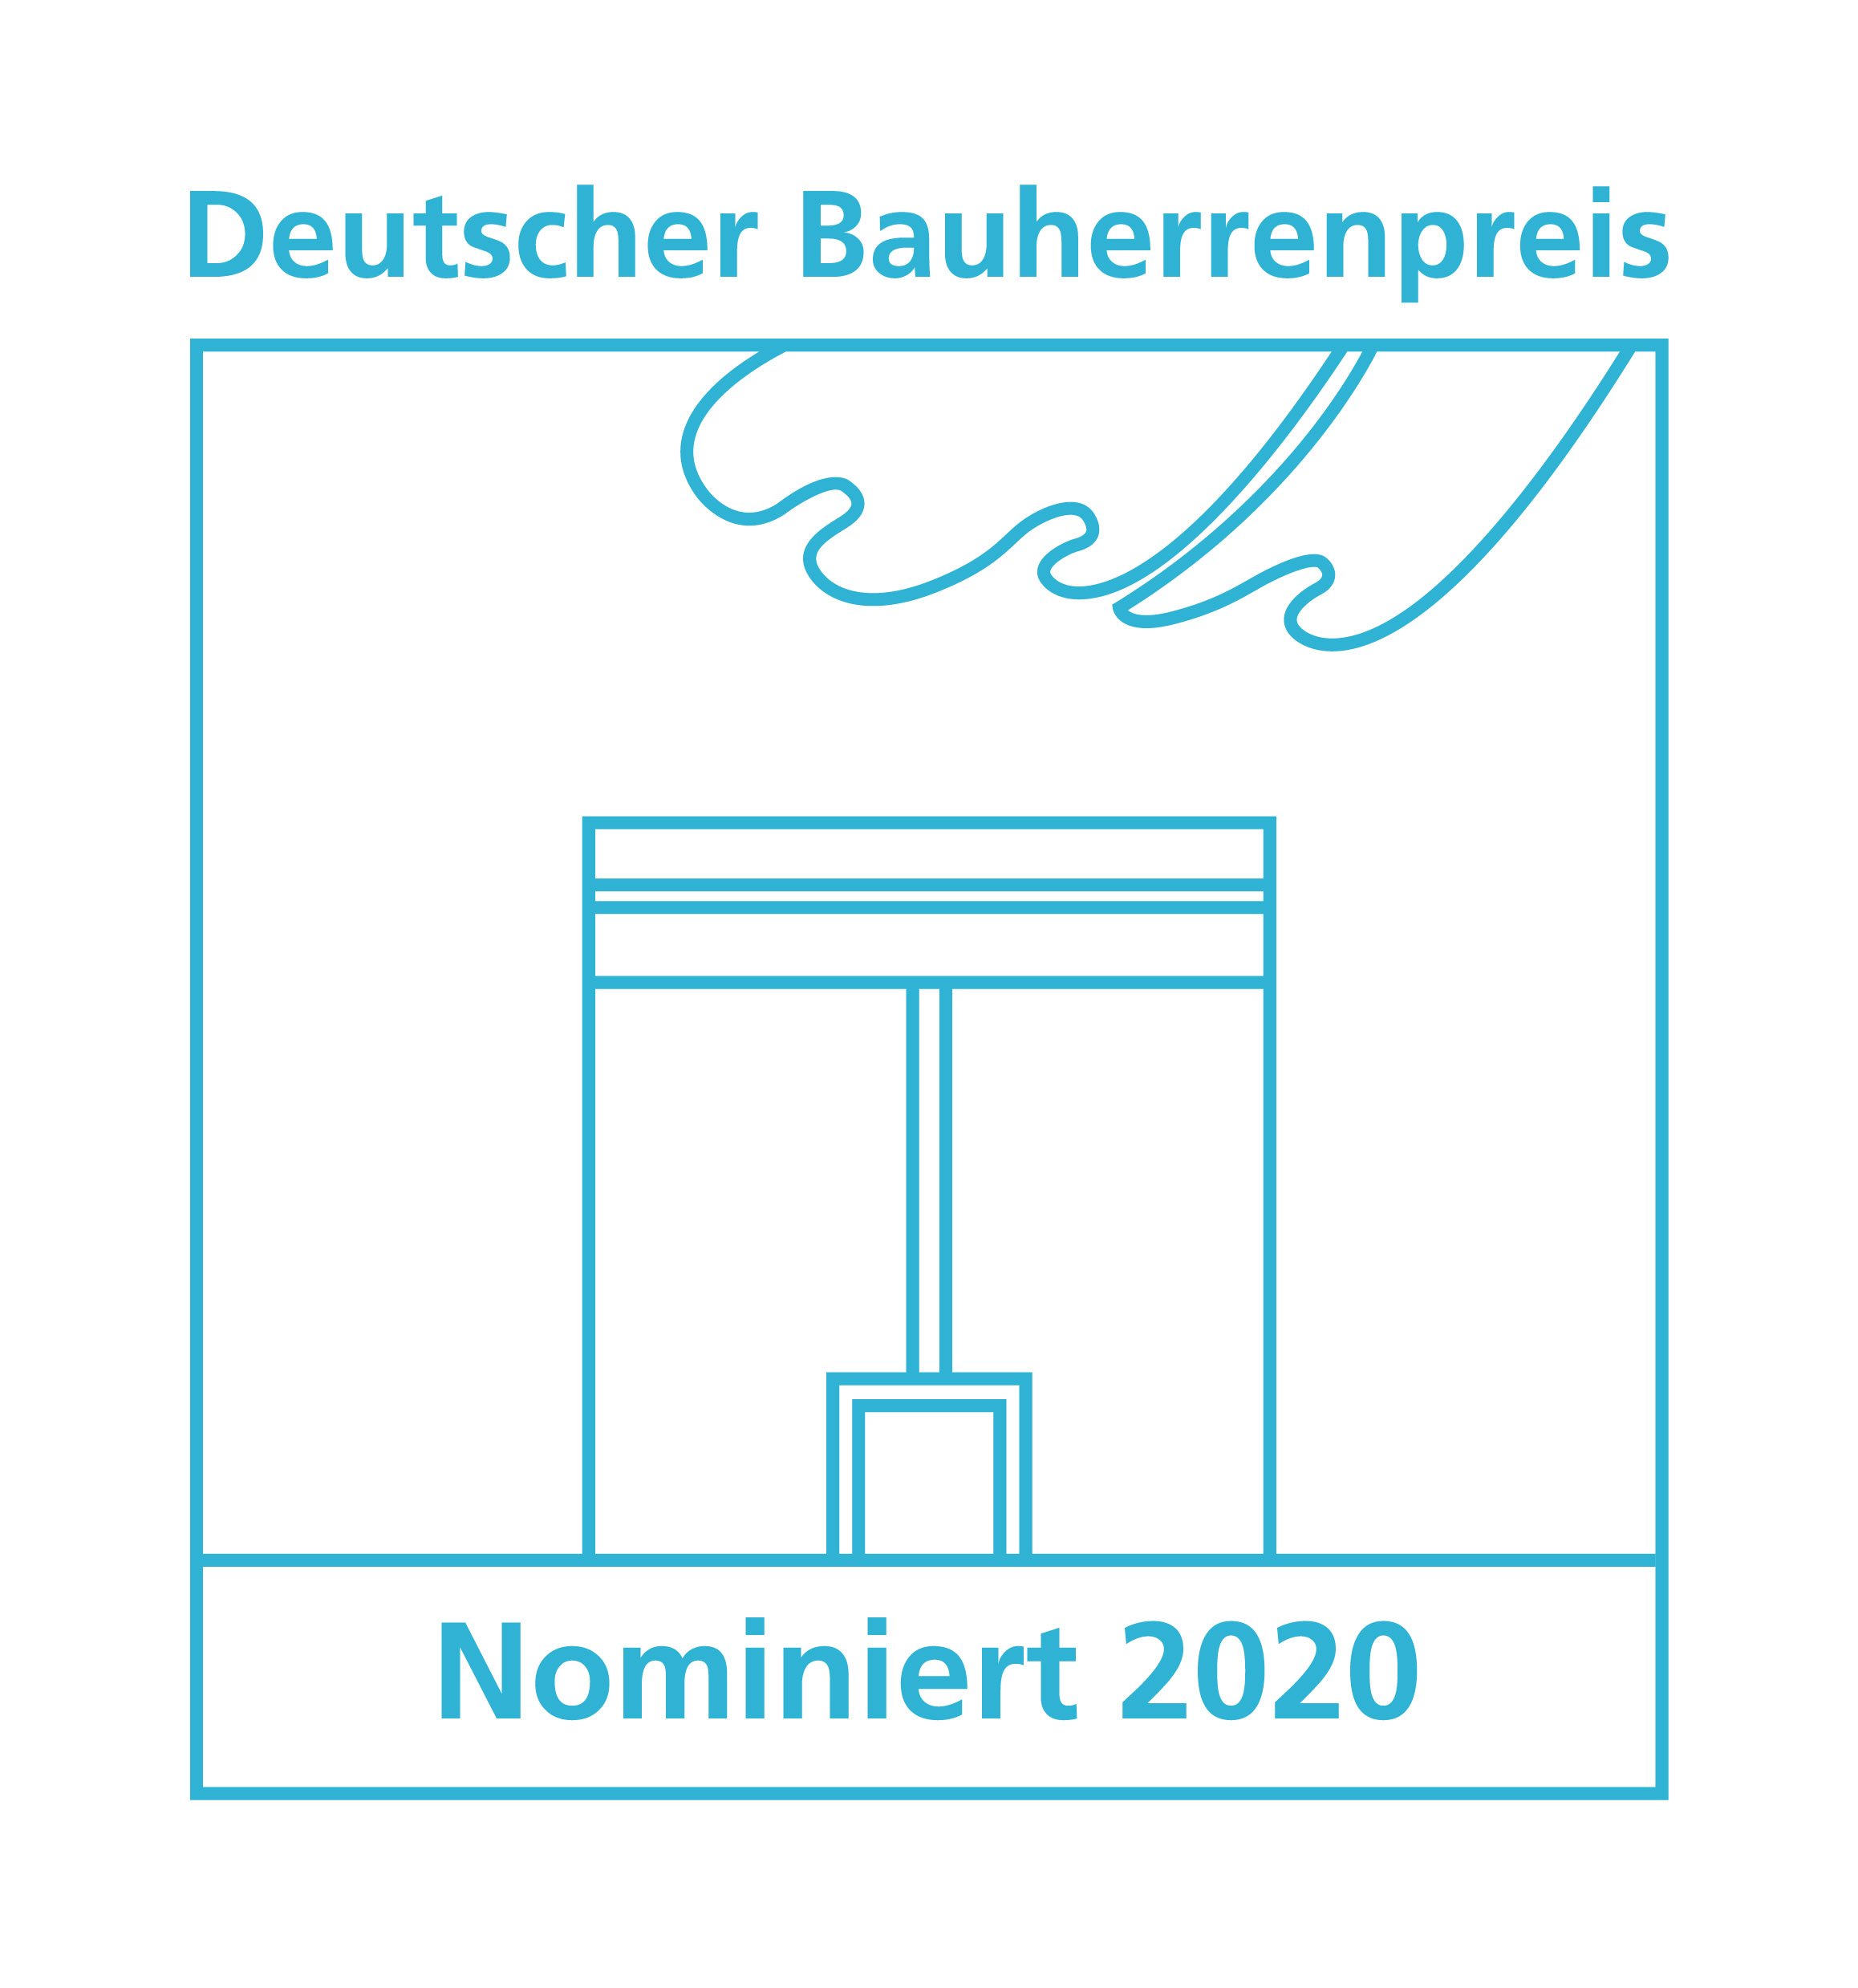 Deutscher Bauherrenpreis 2020 - Nominierungen